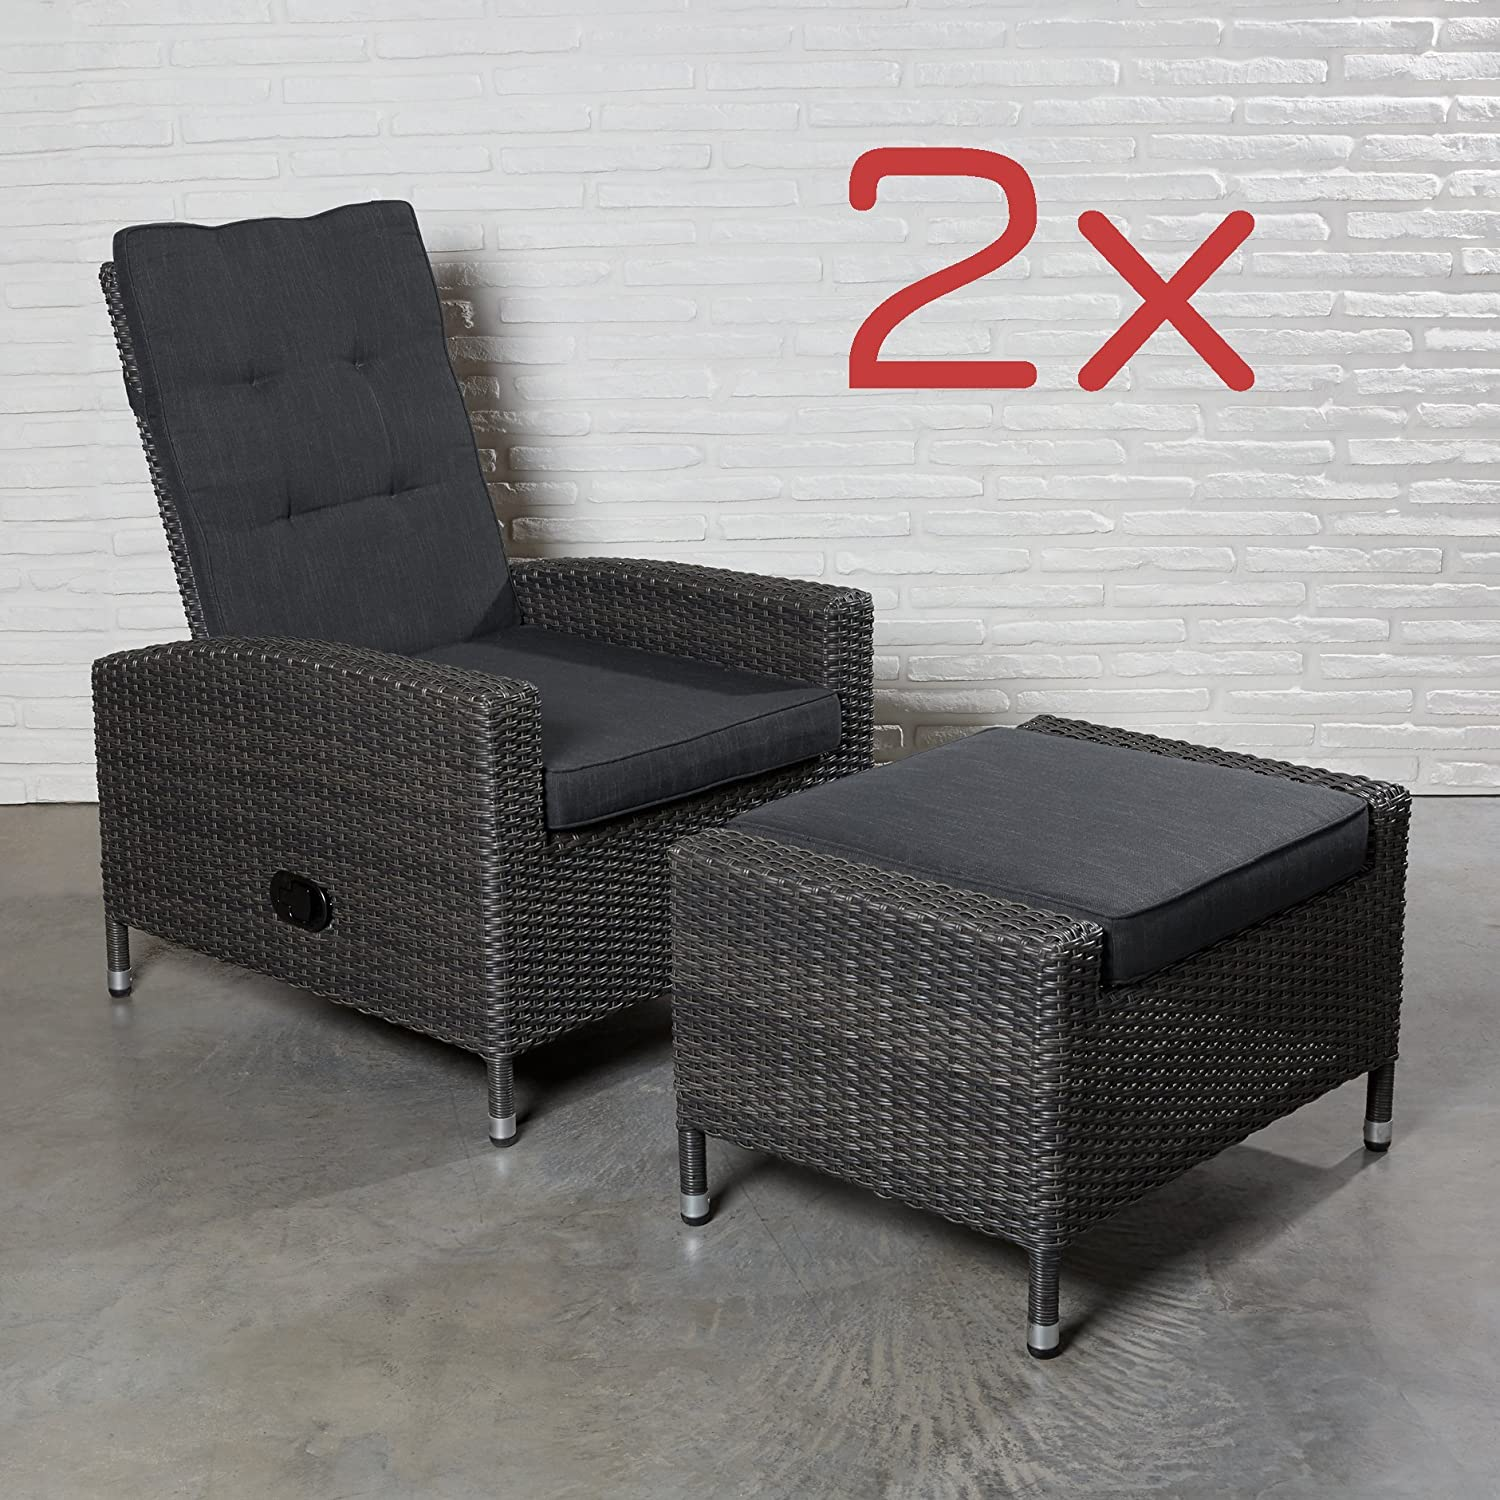 2er set liegesessel sessel relax polyrattan gartensessel verstellbar gartenset online bestellen. Black Bedroom Furniture Sets. Home Design Ideas